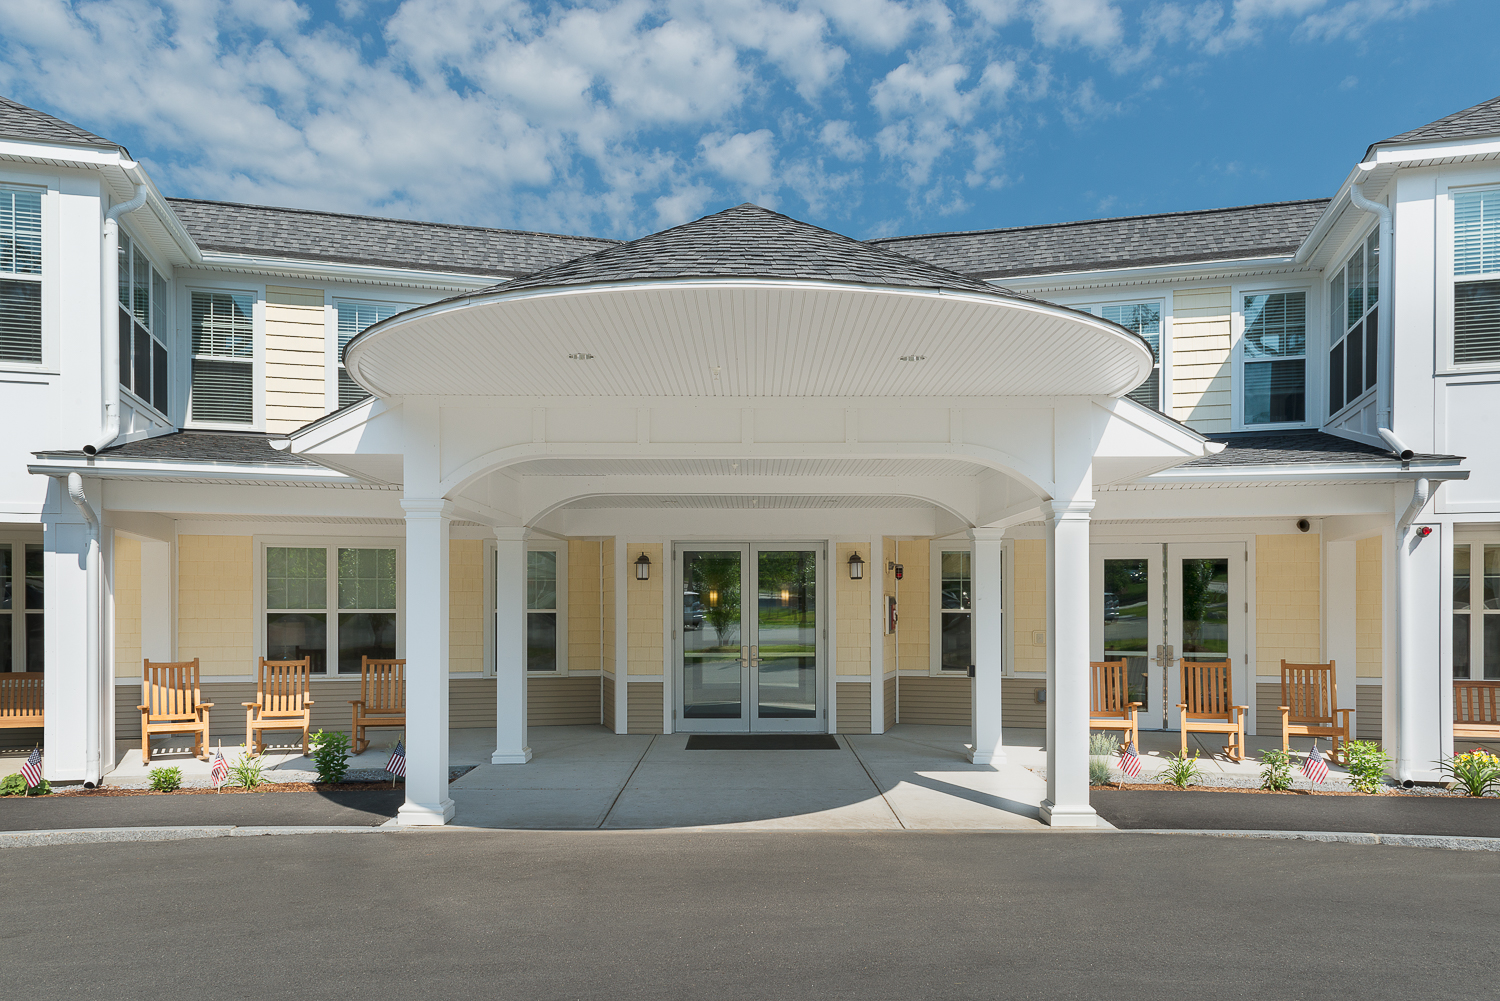 Rounded awning of the front entrance.